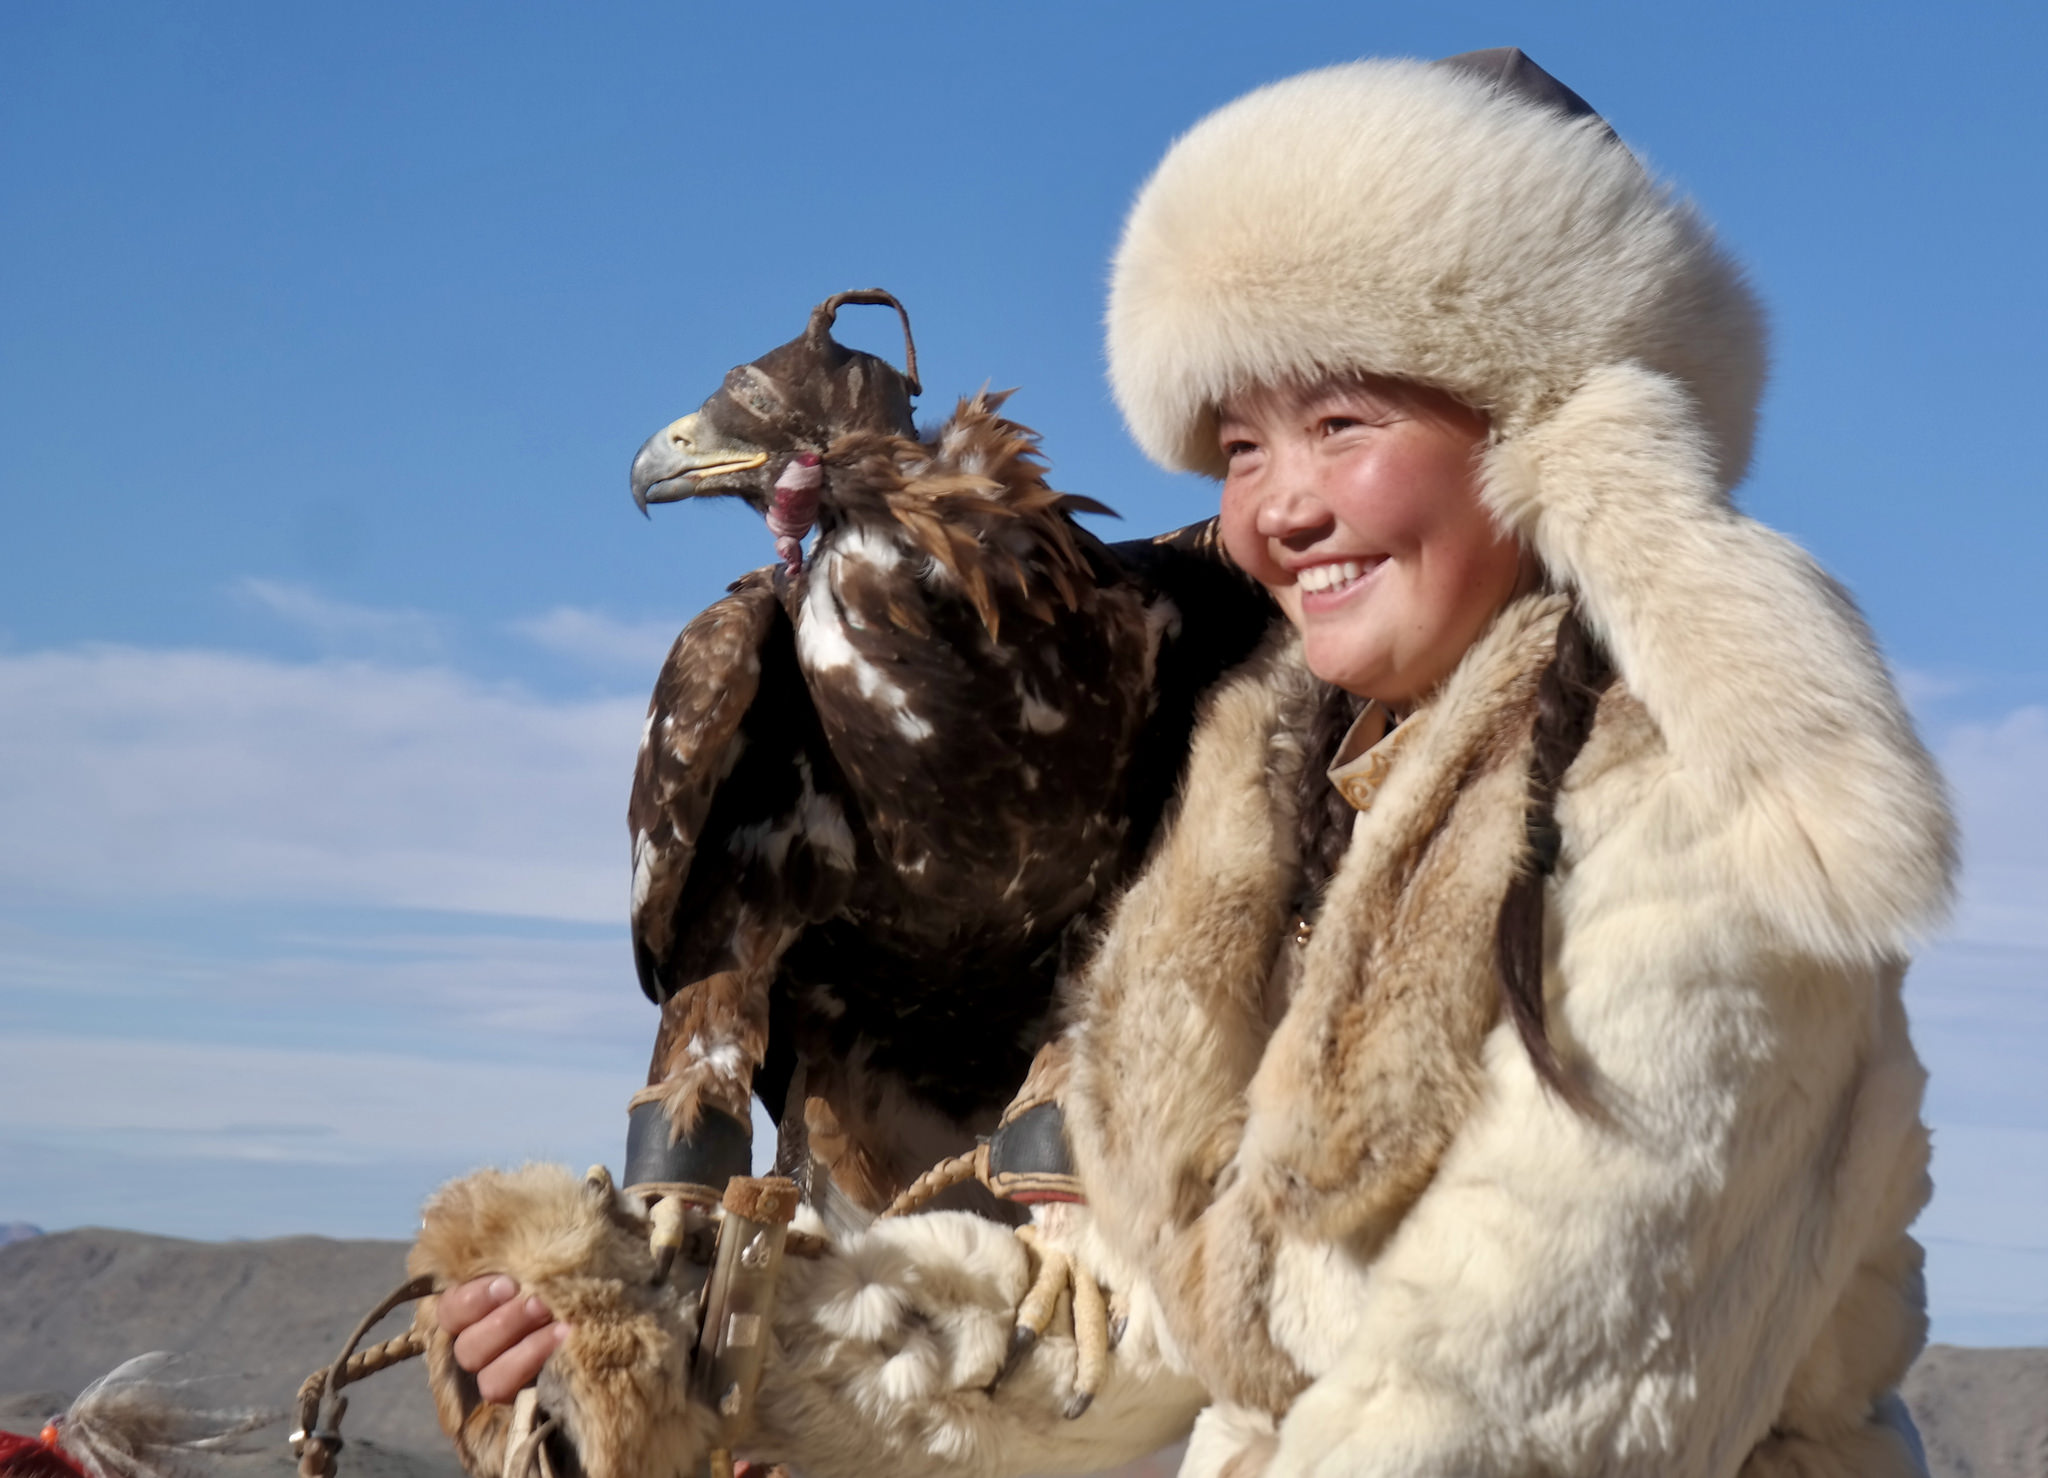 c jozefien heyse the eagle huntress